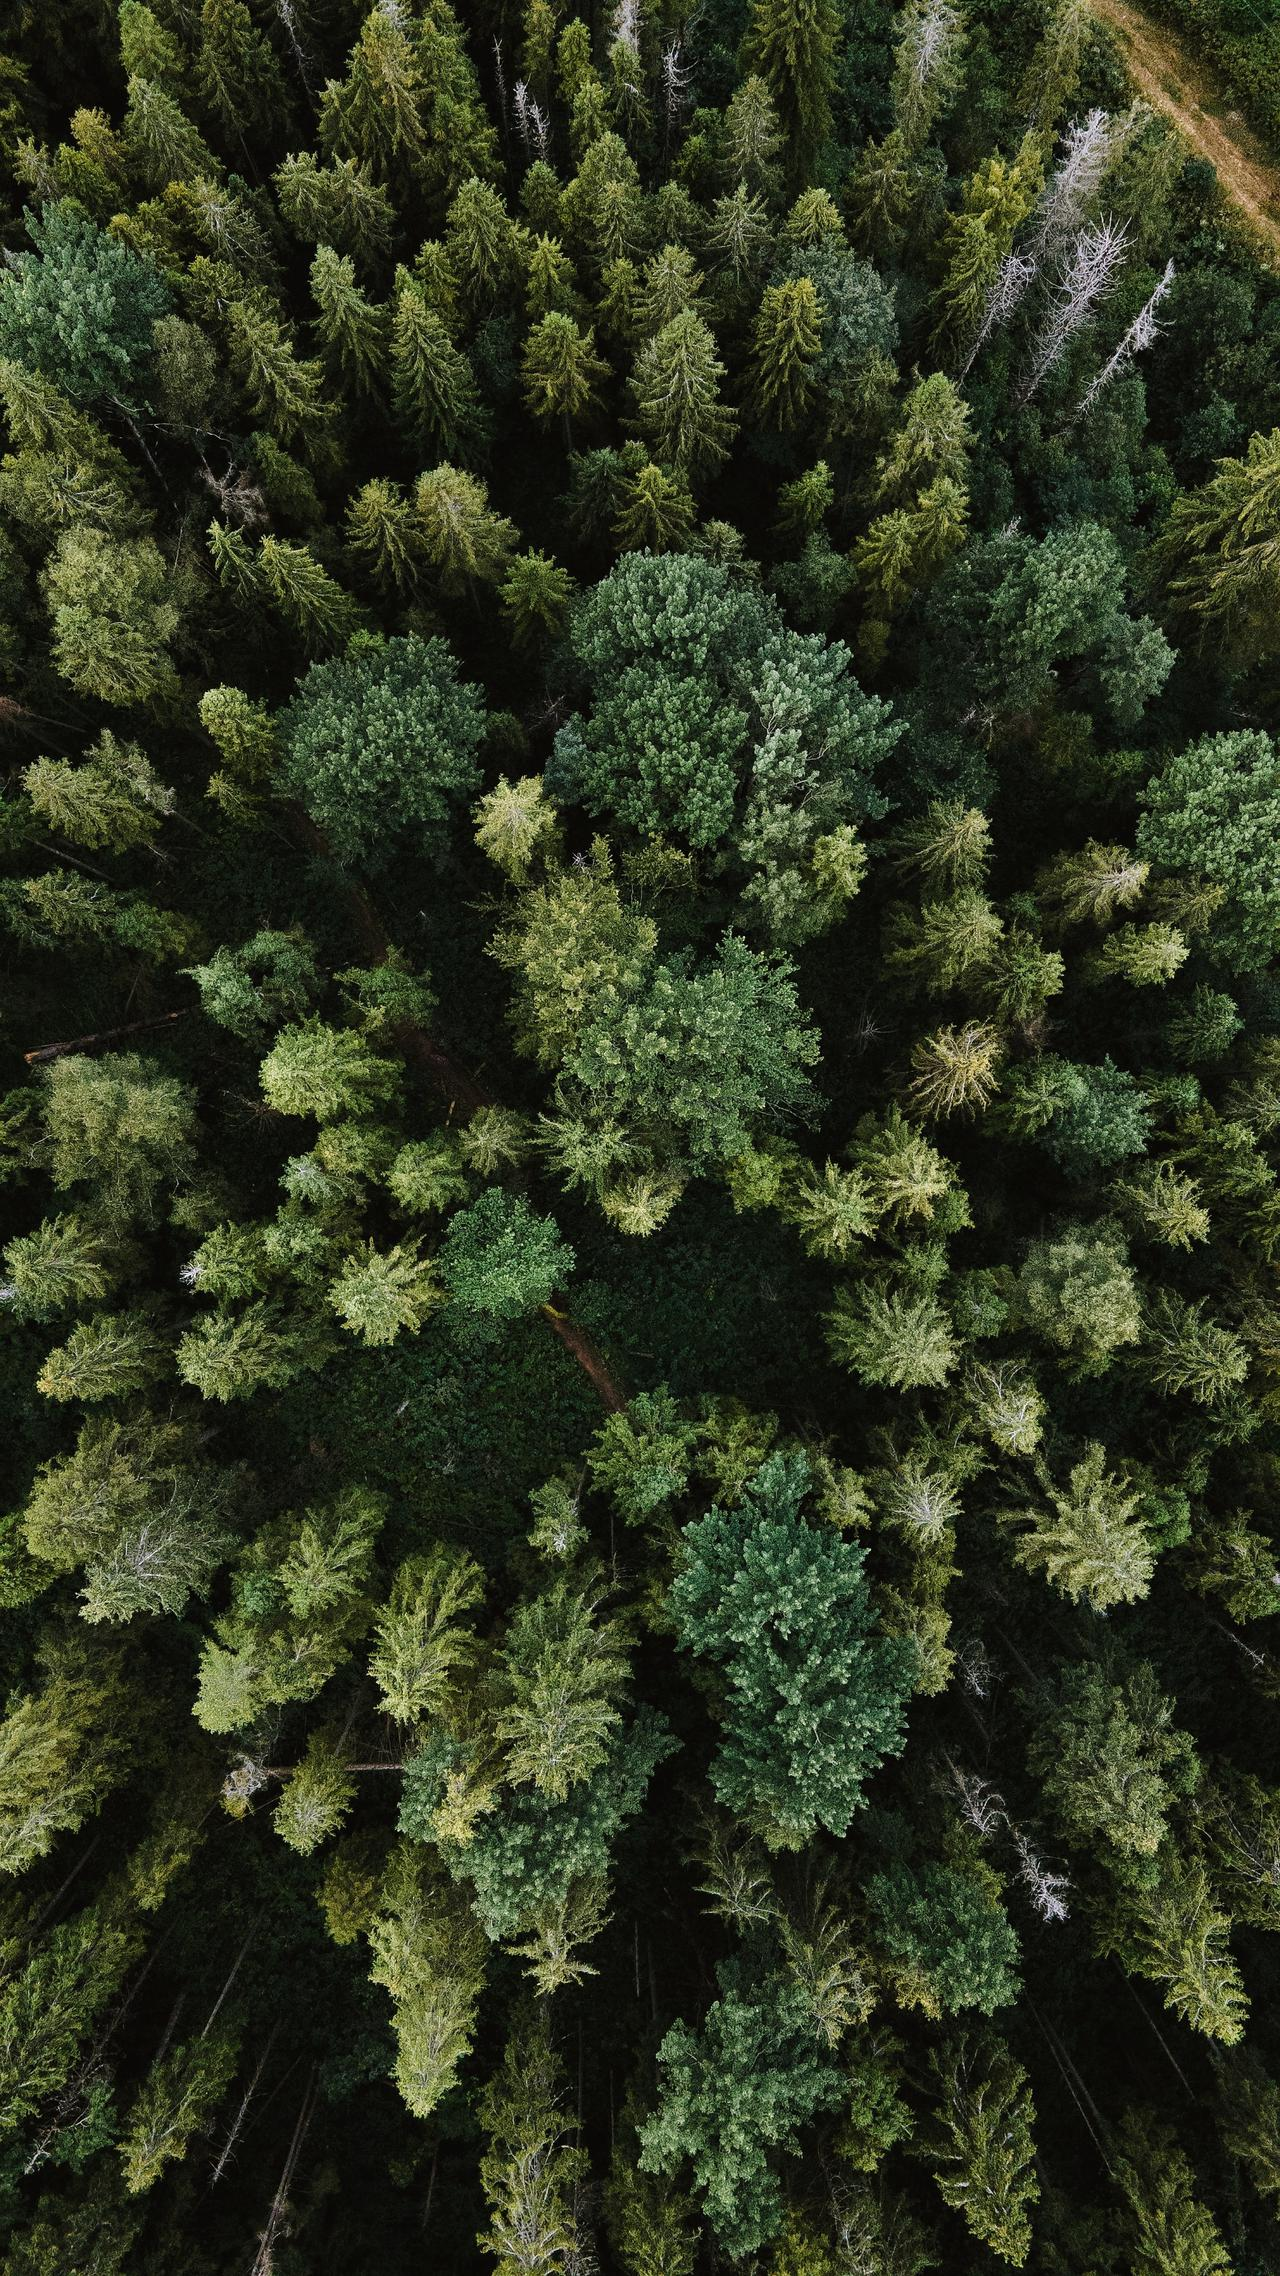 aerial view of a forest, drone shot